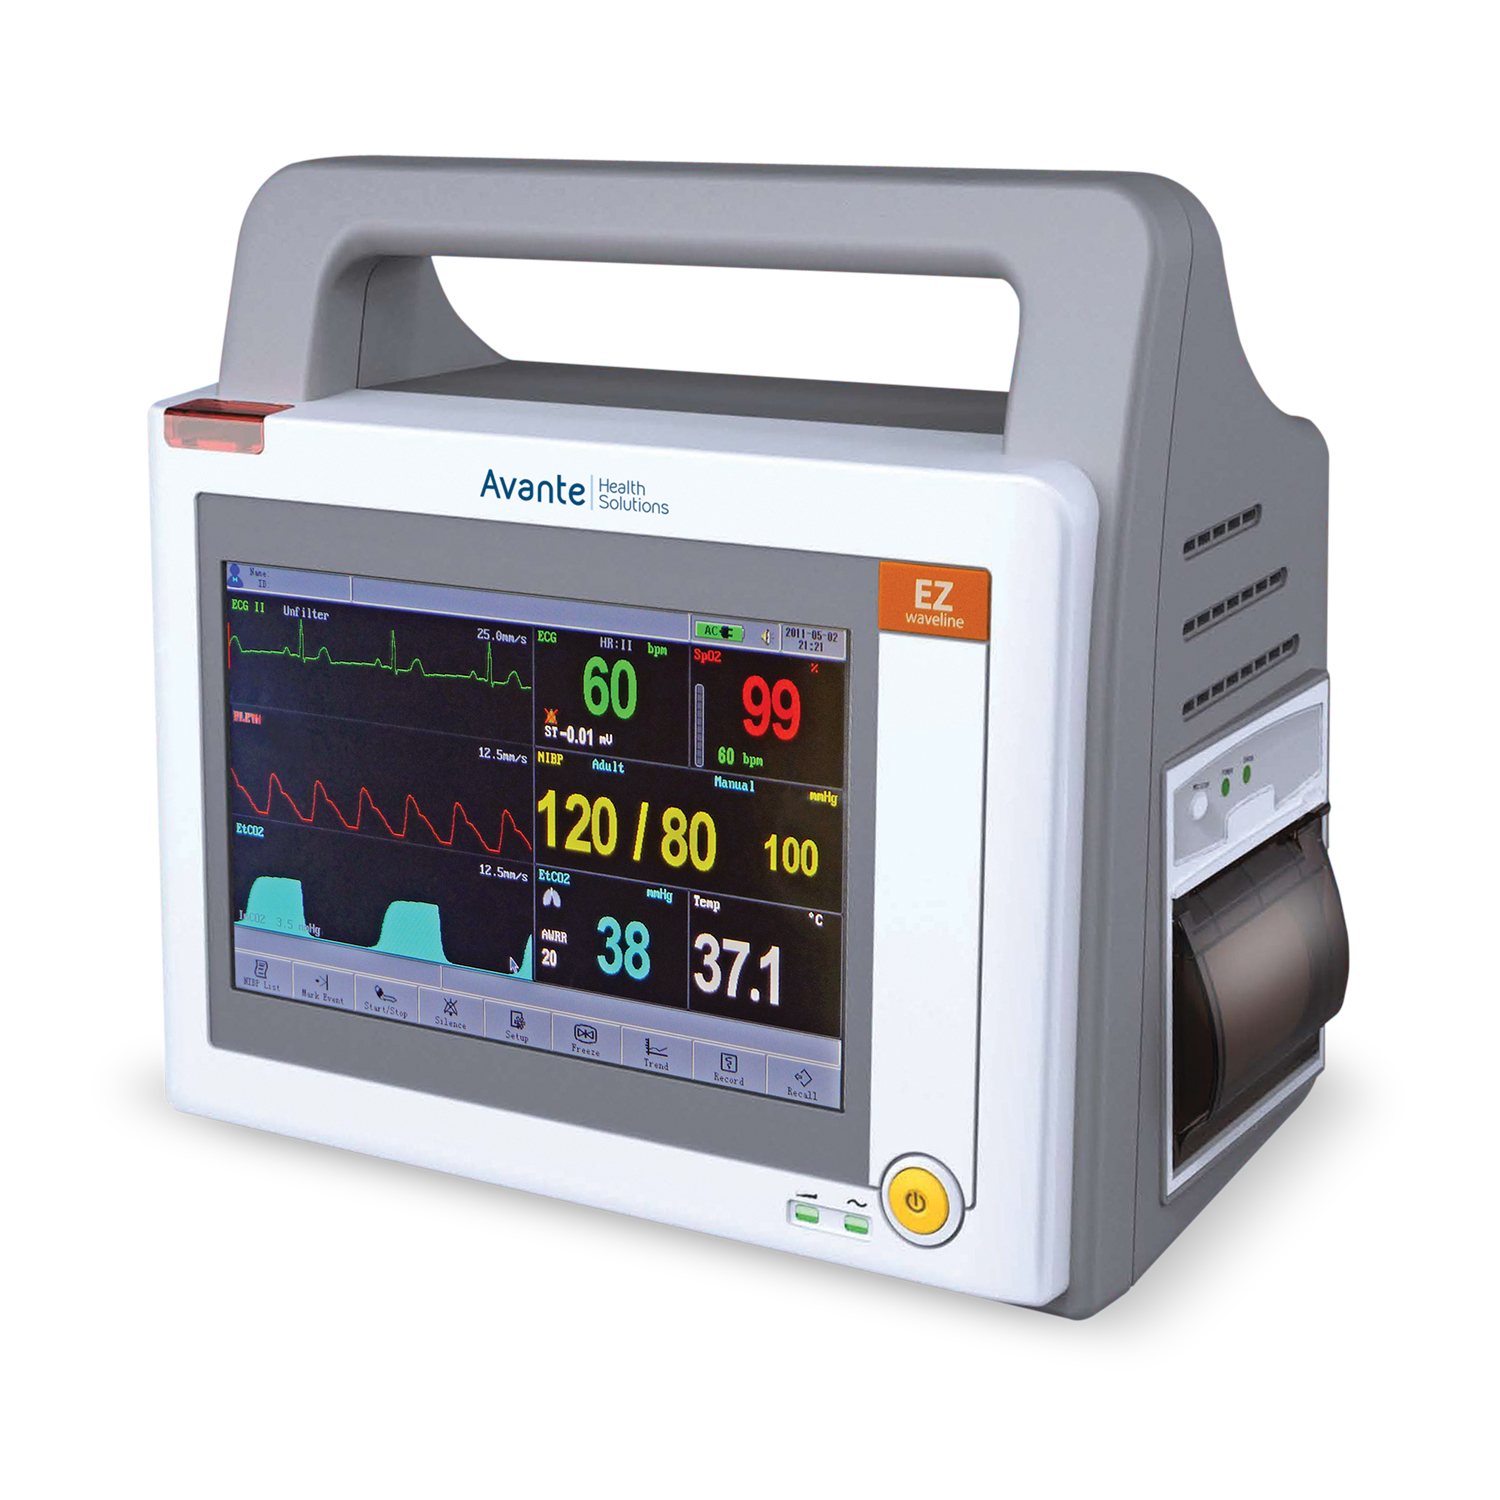 Avante Waveline EZ Portable Patient Monitor with Touch-Screen